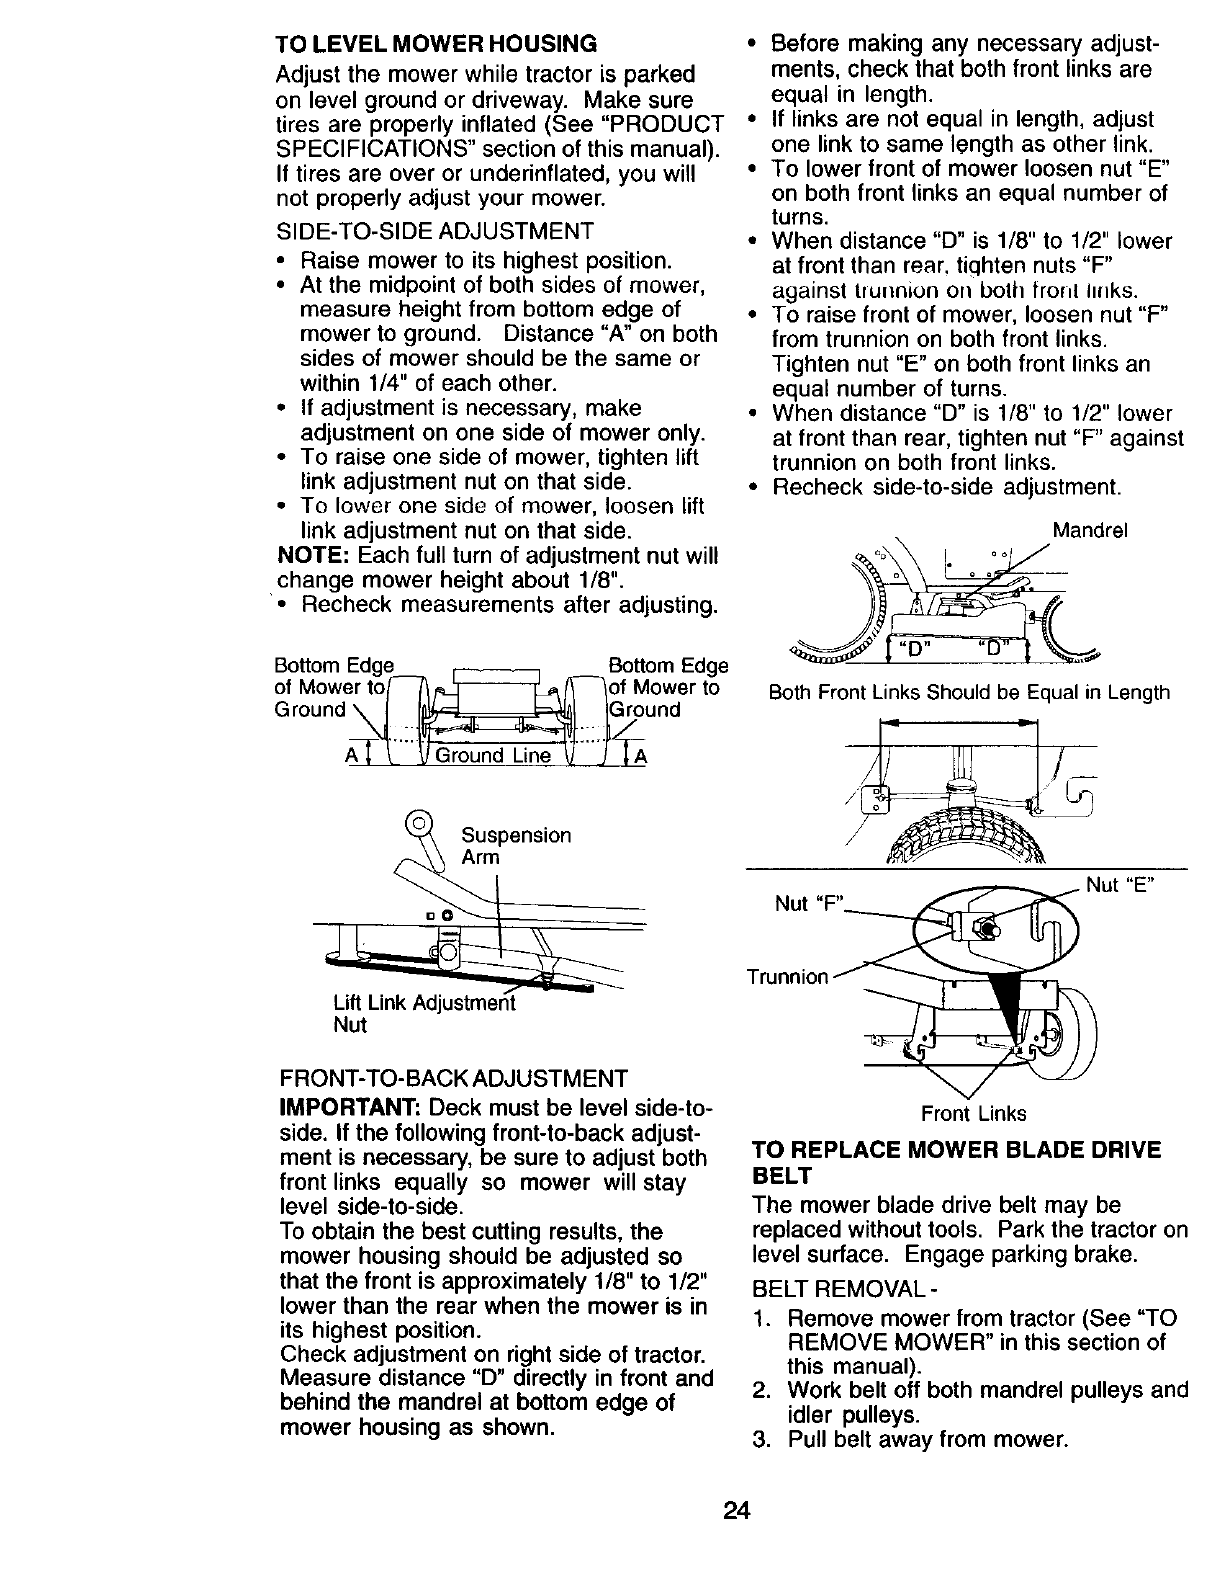 Page 24 of Craftsman Lawn Mower 917.271815 User Guide